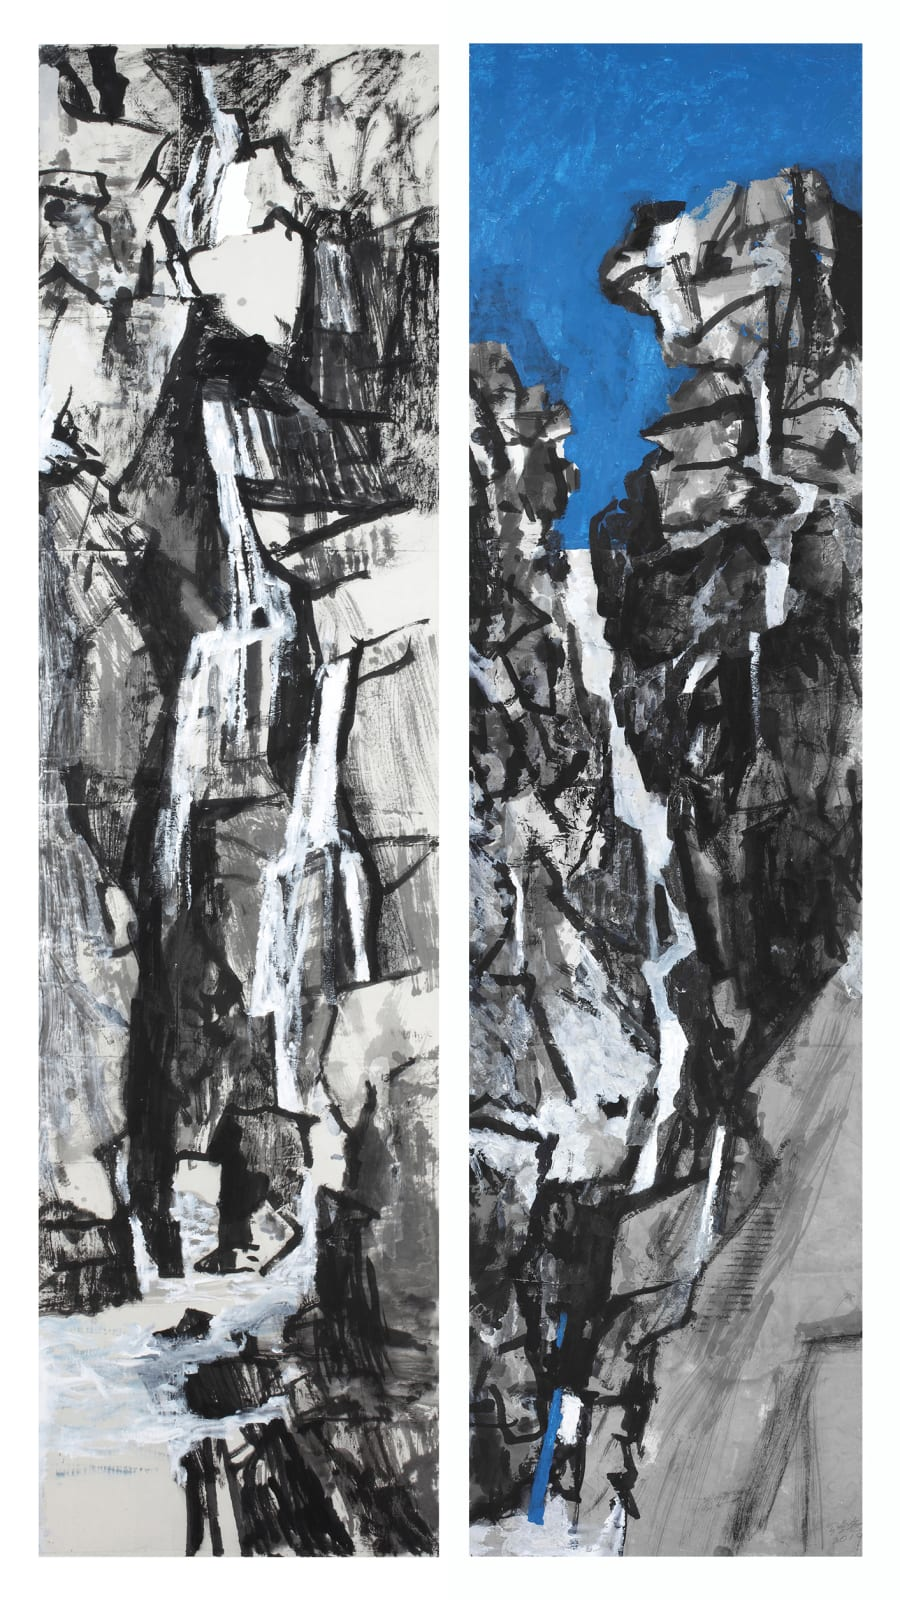 Wang Gongyi 王公懿, 'Landscape - Water, Rocks' and 'Landscape - Sky, Water', 2018